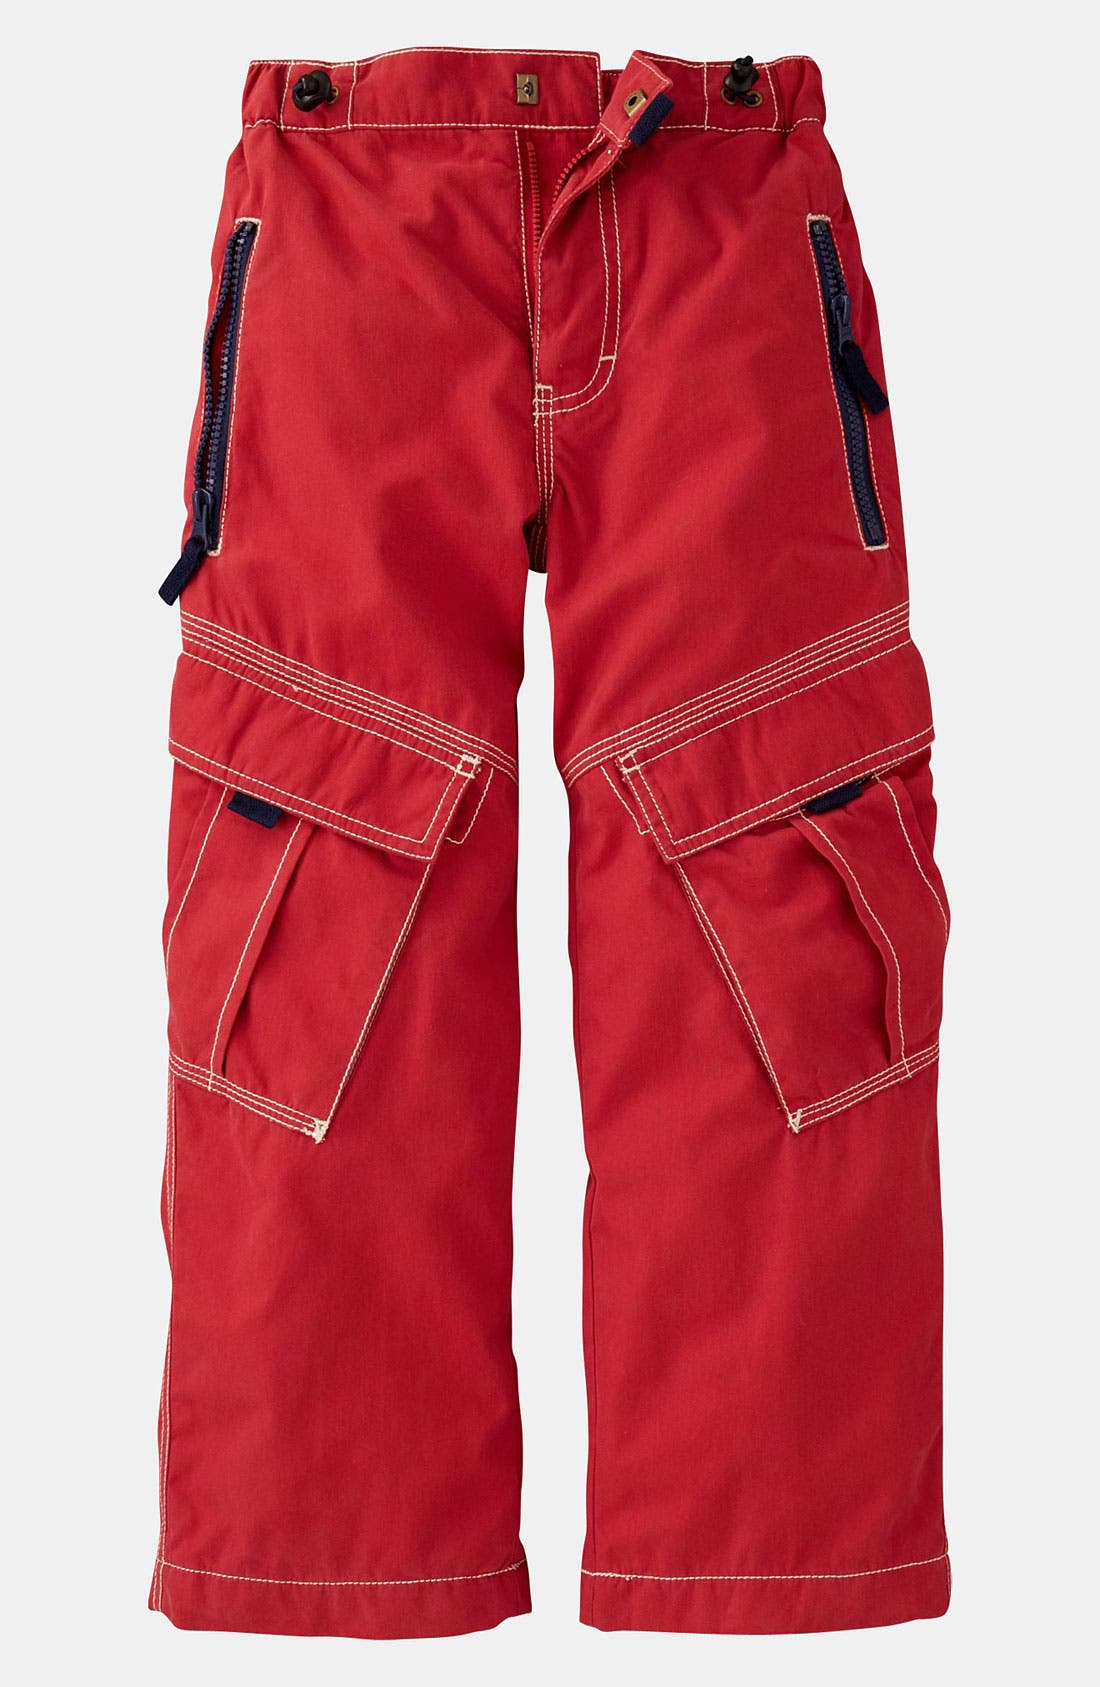 Main Image - Mini Boden 'Skate' Cargo Pants (Little Boys & Big Boys)